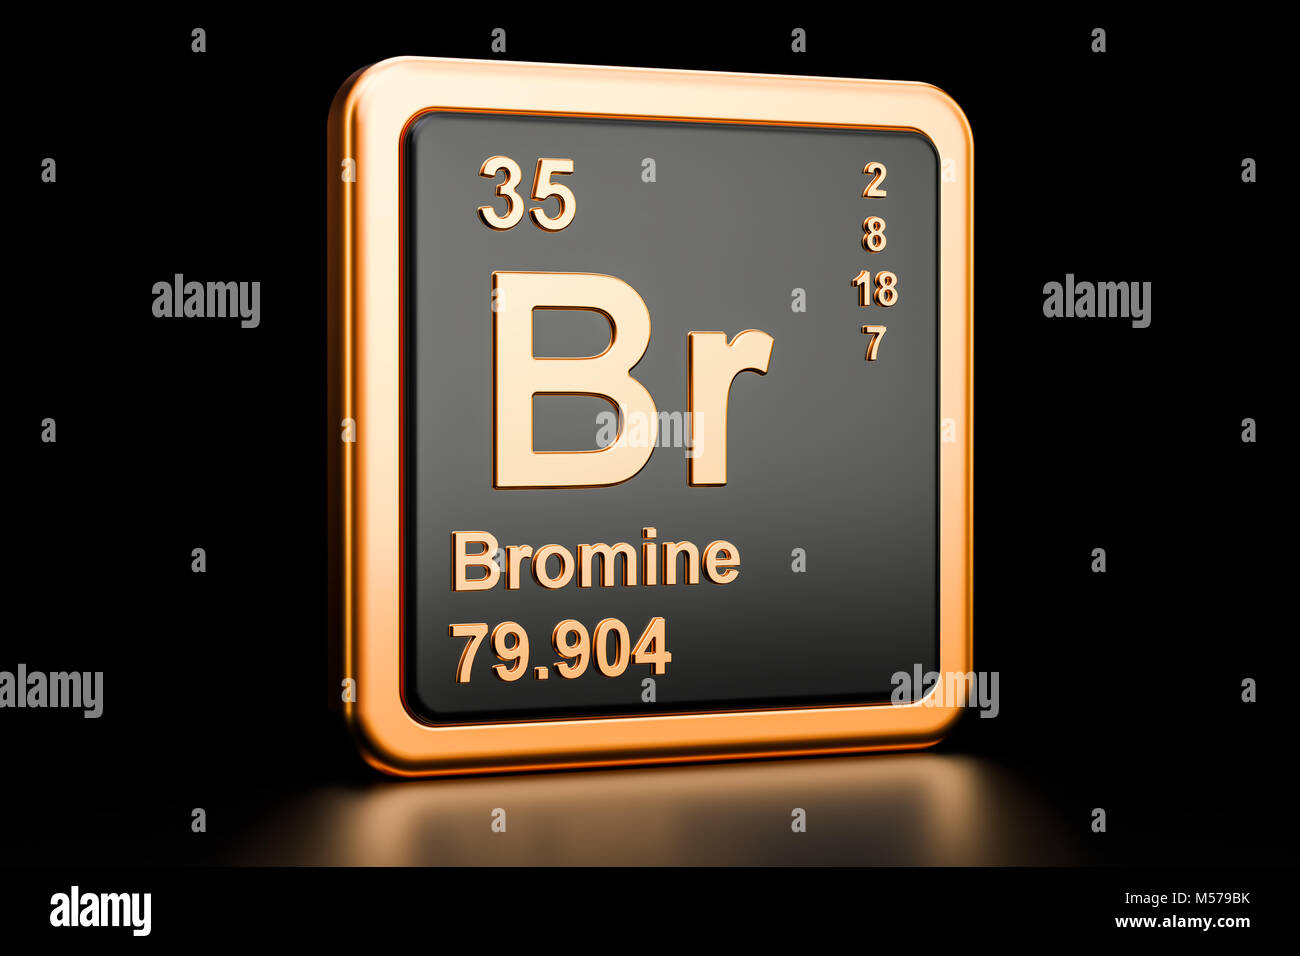 Symbol chemical element bromine stock photos symbol chemical bromine br chemical element 3d rendering isolated on black background stock image biocorpaavc